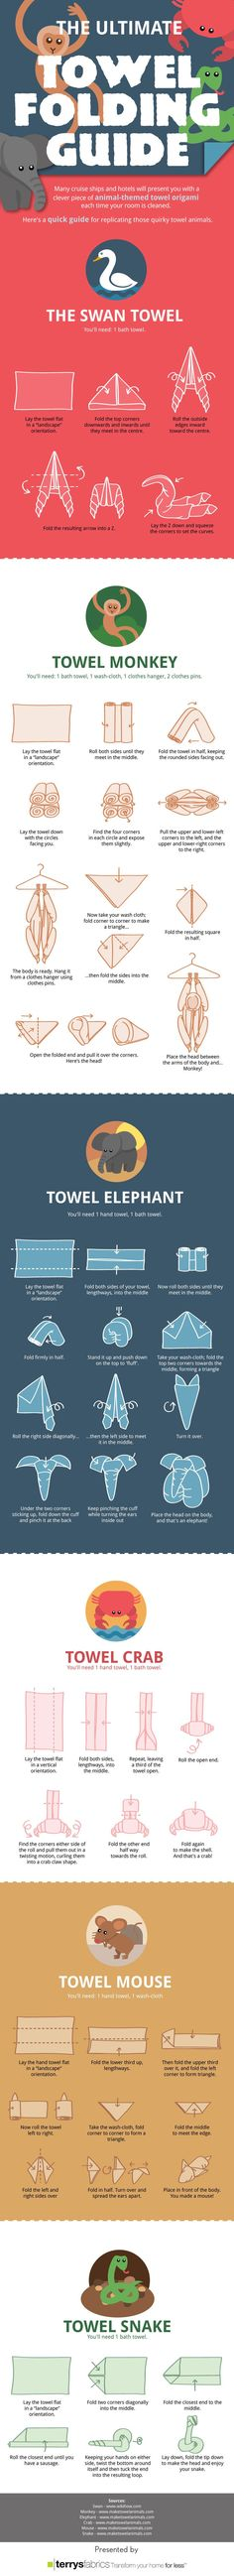 How fun! I'd love to set up some cute towel animals in the guest room!